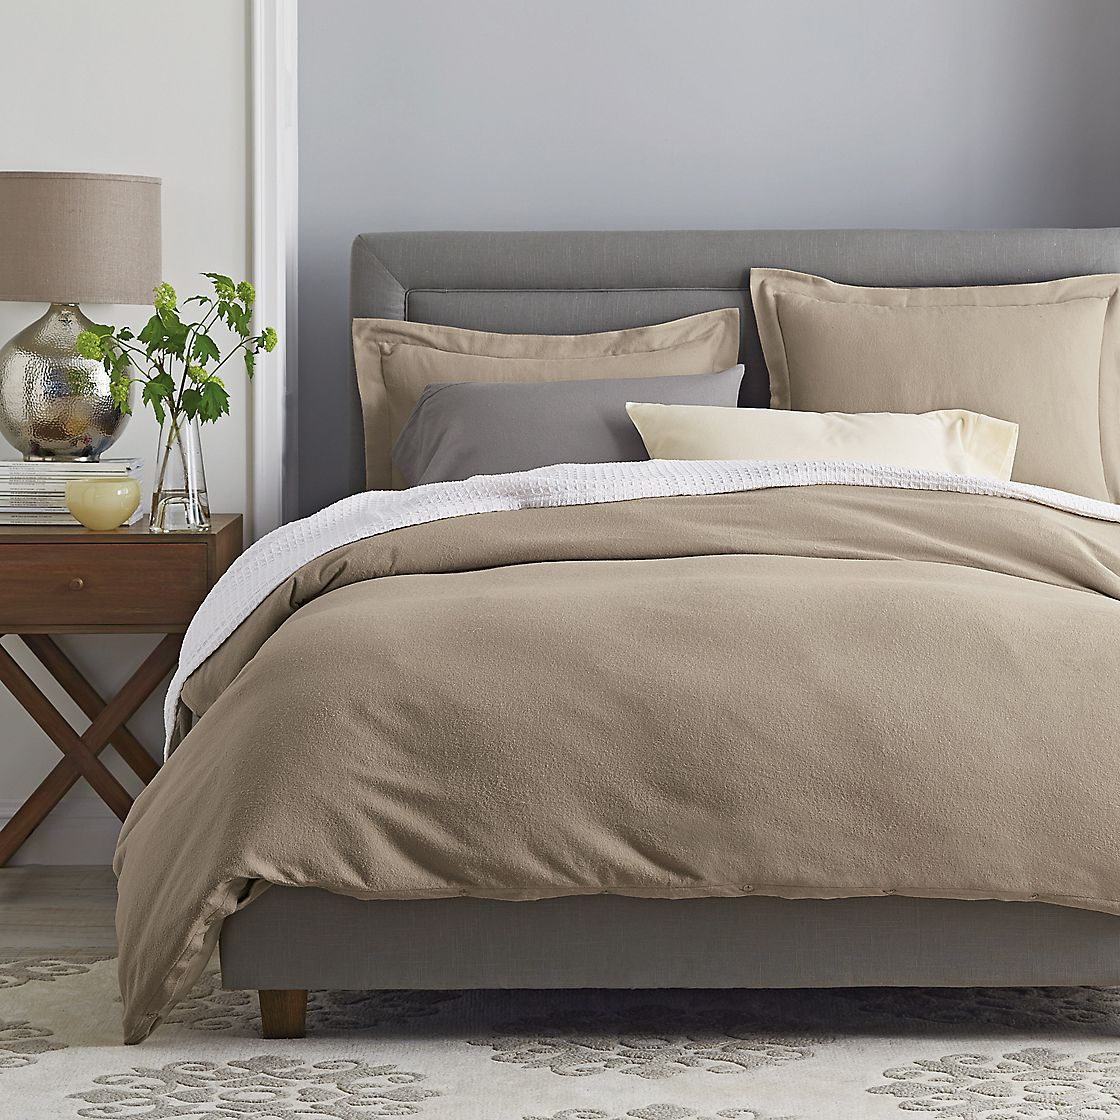 Legends 174 6 Oz Solid Sateen Flannel Bedding The Company